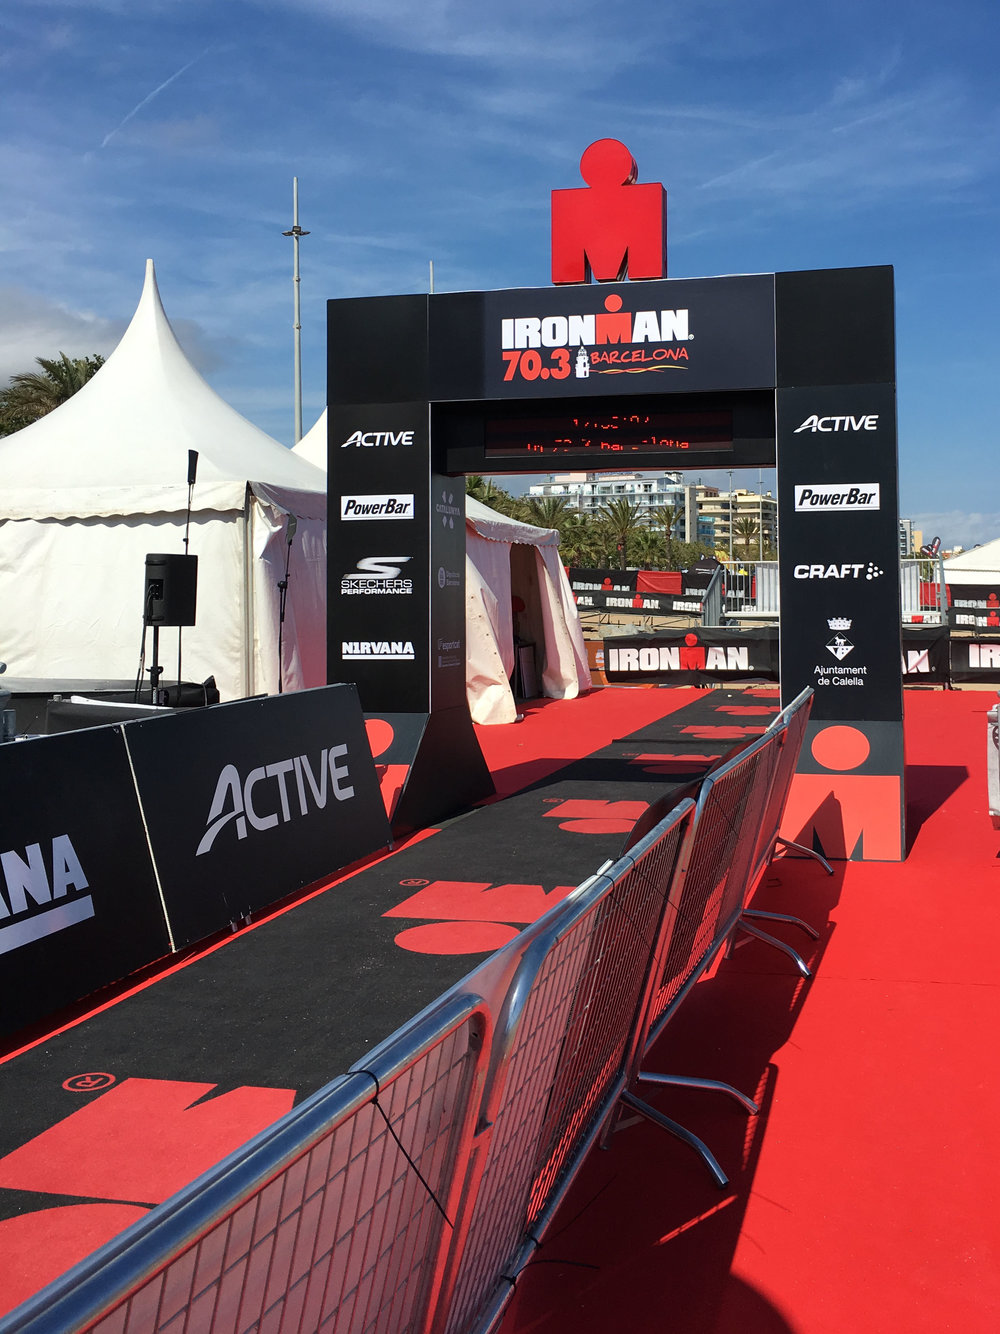 Checking out the Ironman 70.3 Barcelona